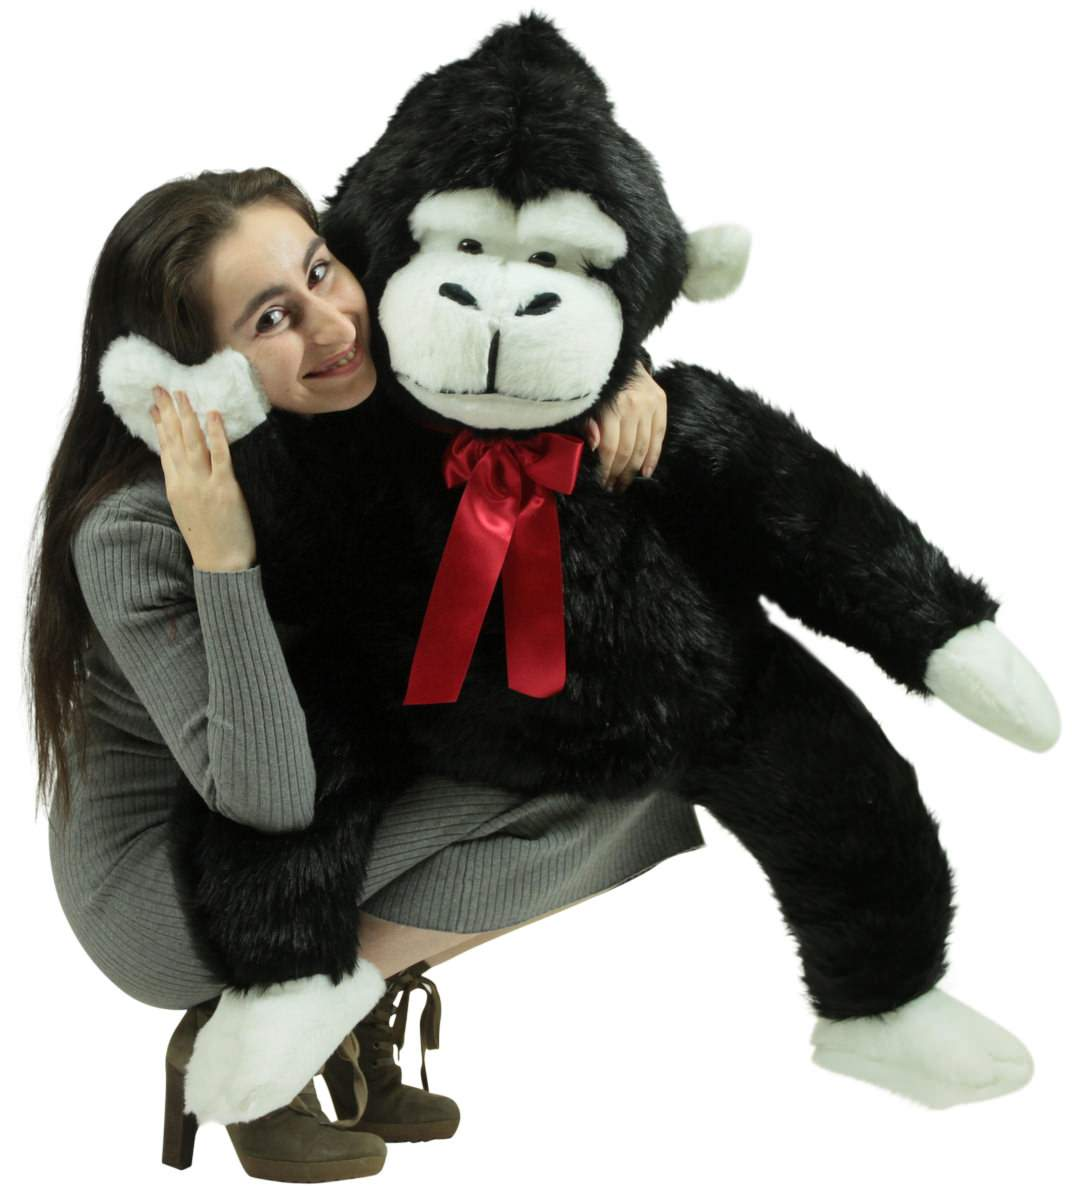 American Made Giant Stuffed Monkey 40 Inch Soft Black Big Stuffed